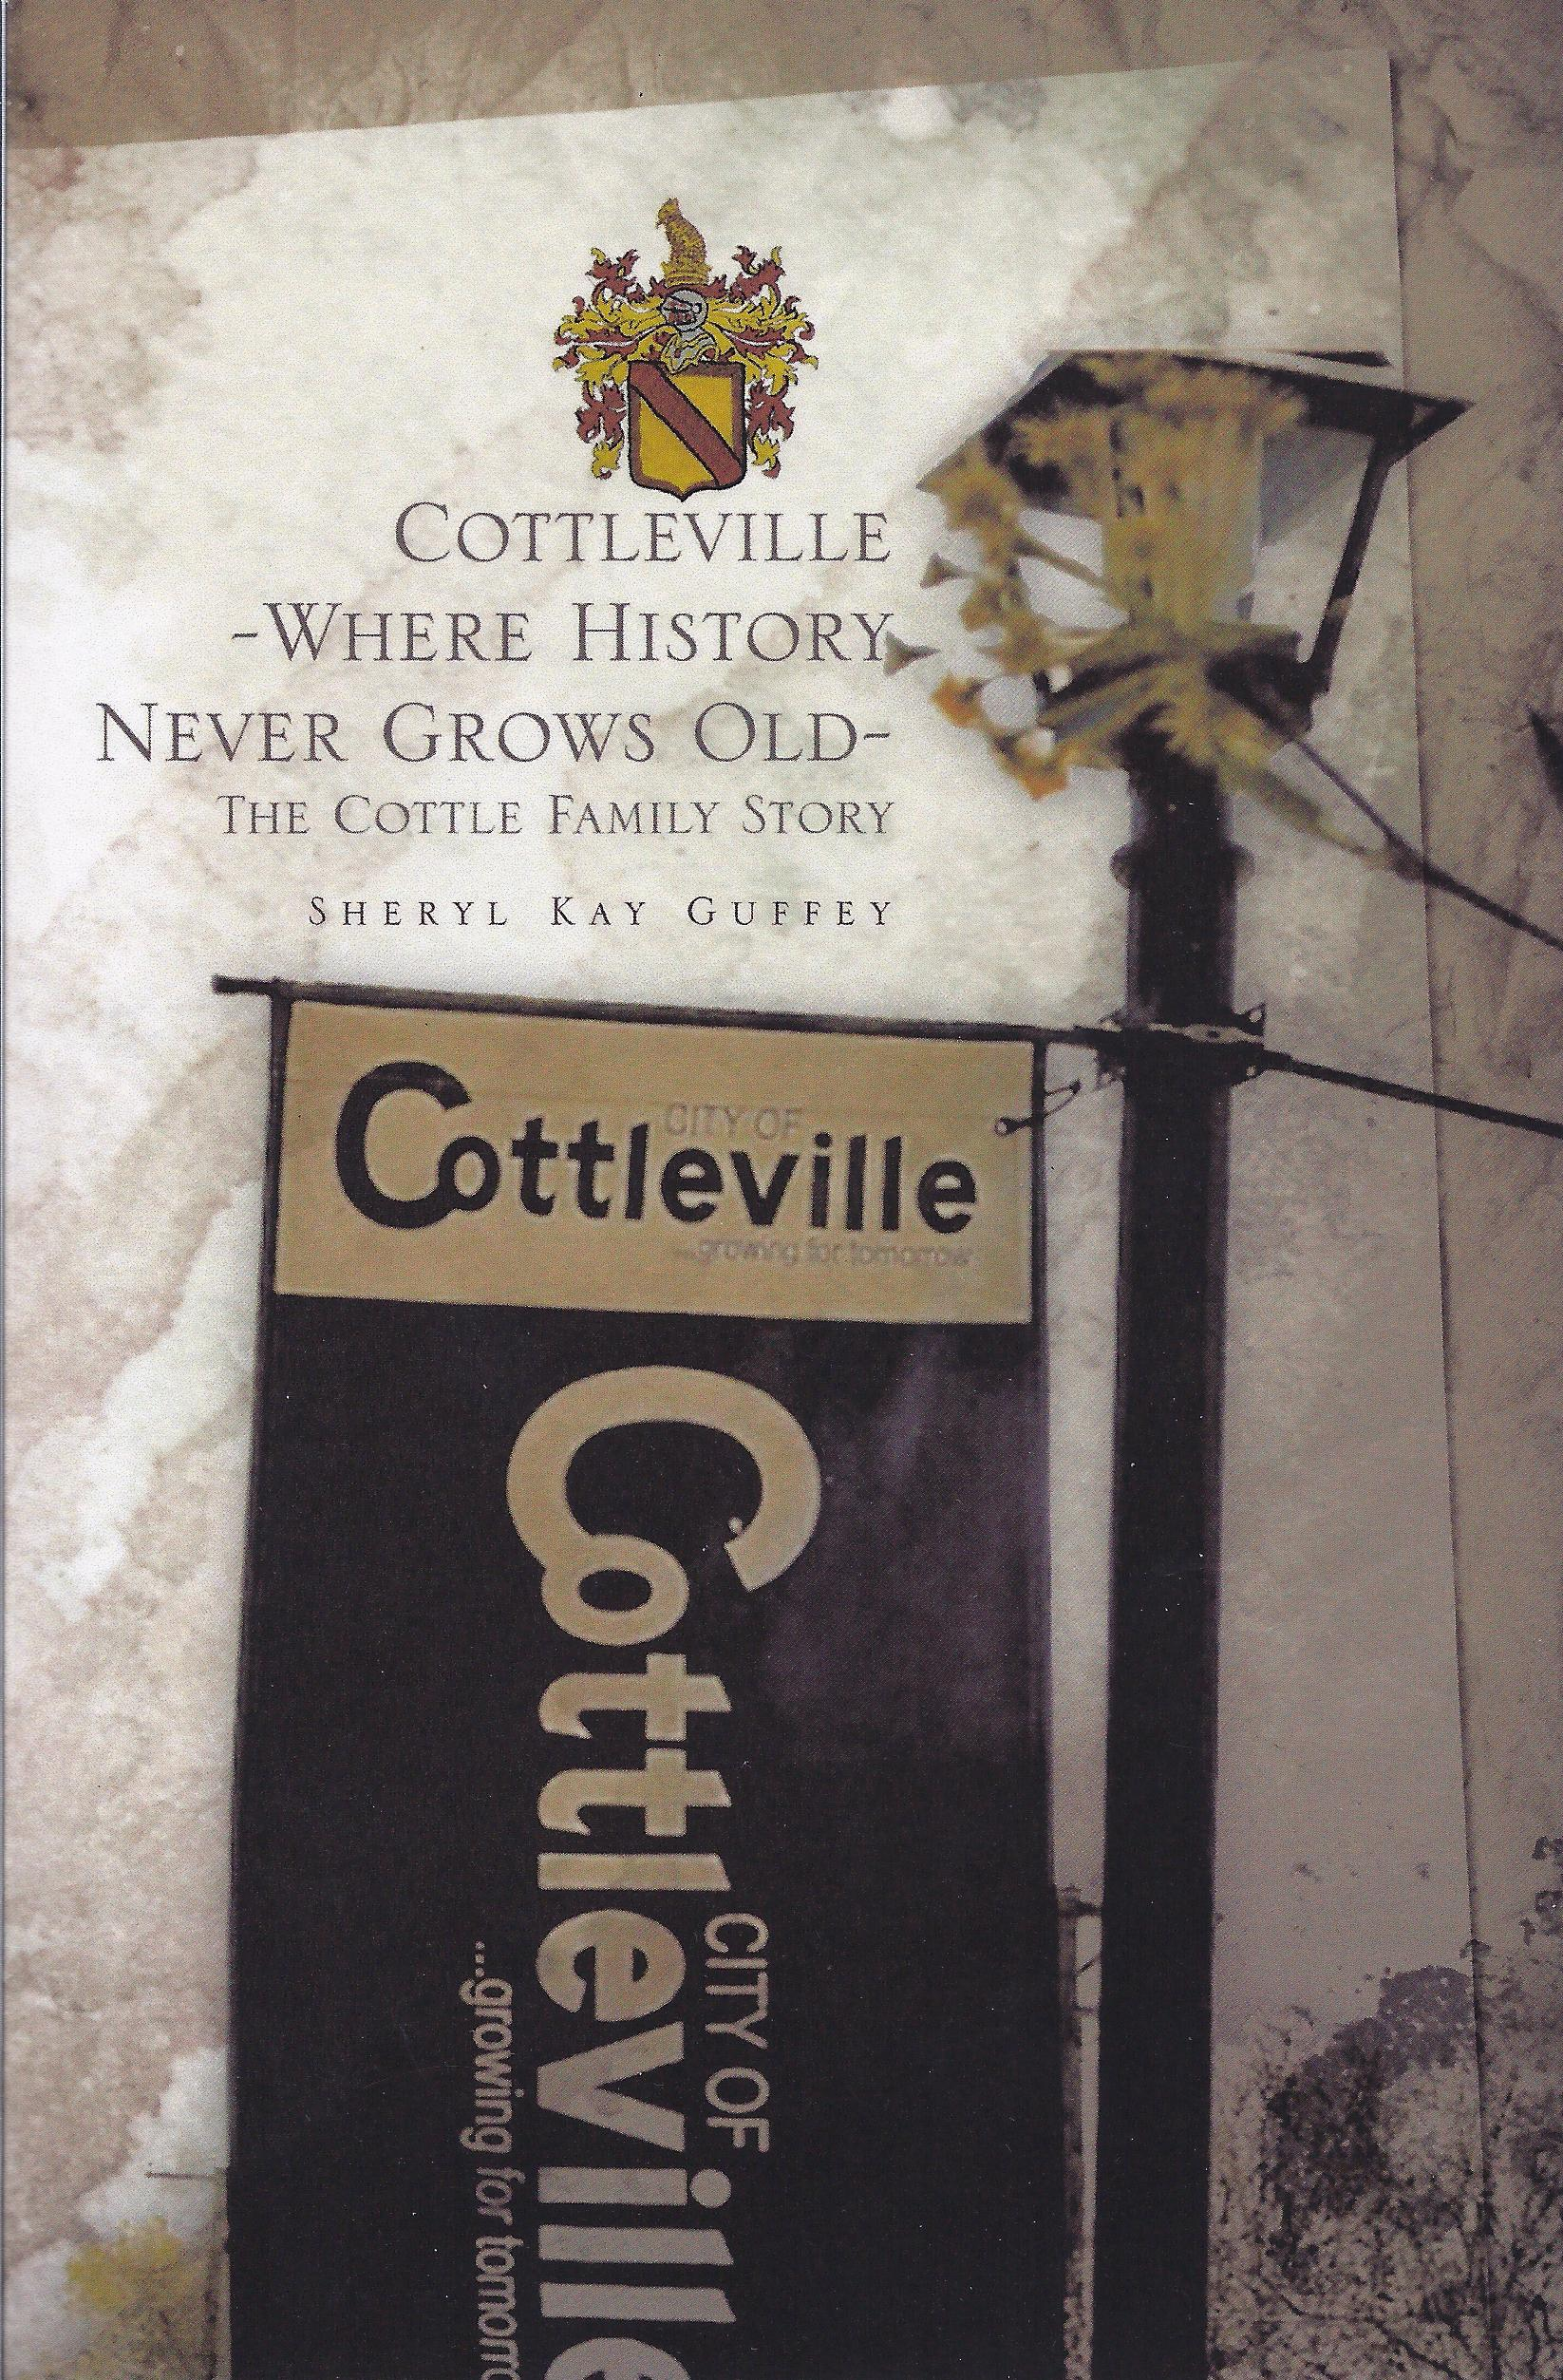 Cottleville - Where History Never Grows Old